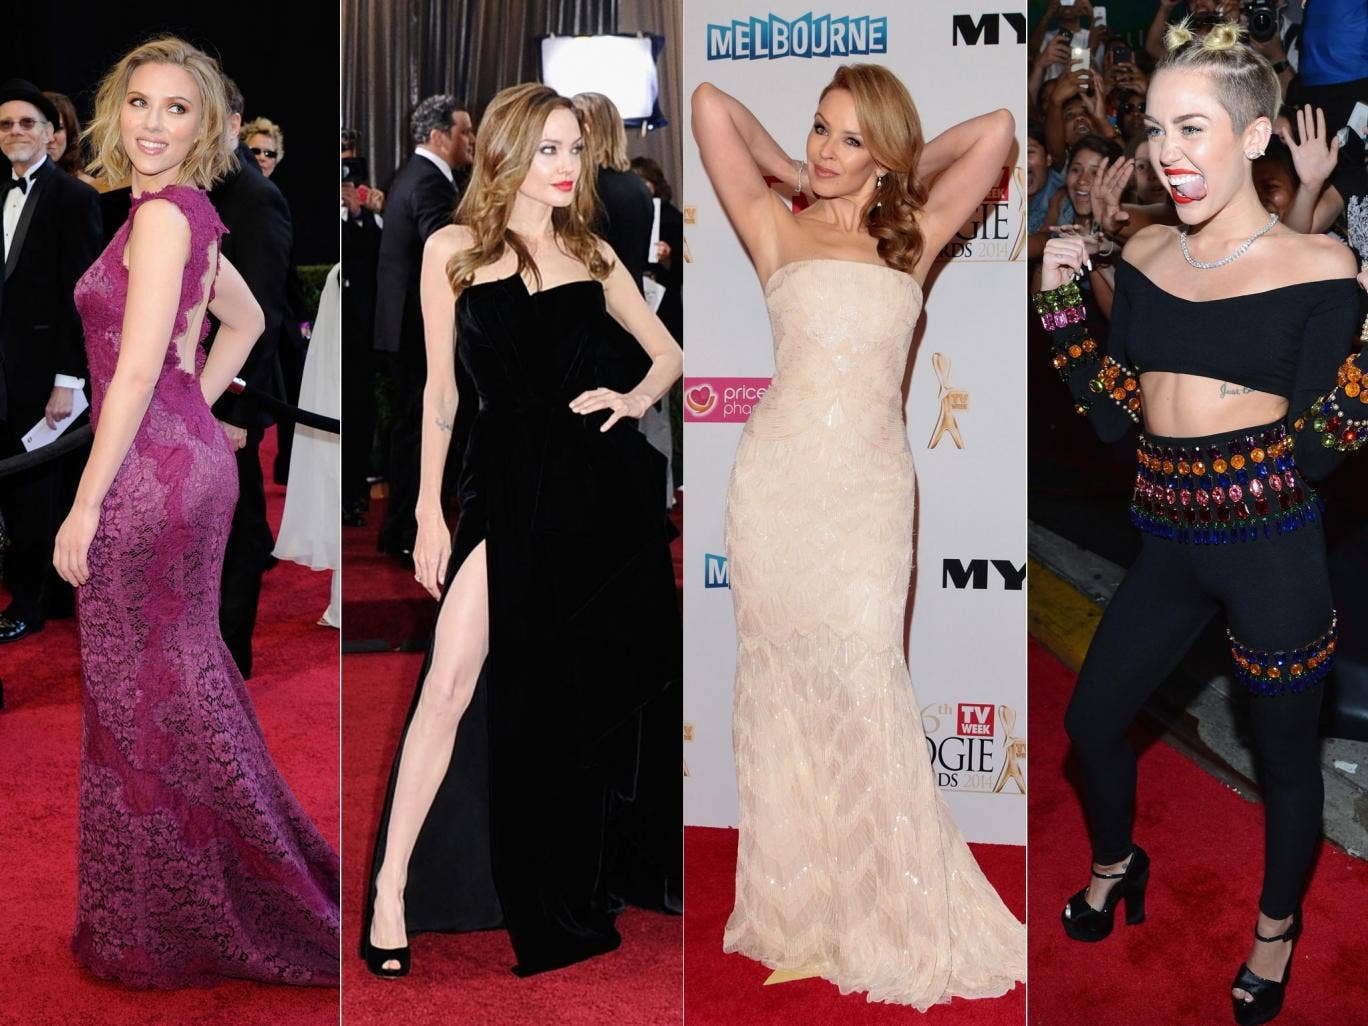 From left to right: backless: Scarlett Johansson; thigh high: Angelina Jolie; arms akimbo: Kylie Minogue; twerk out: Miley Cyrus